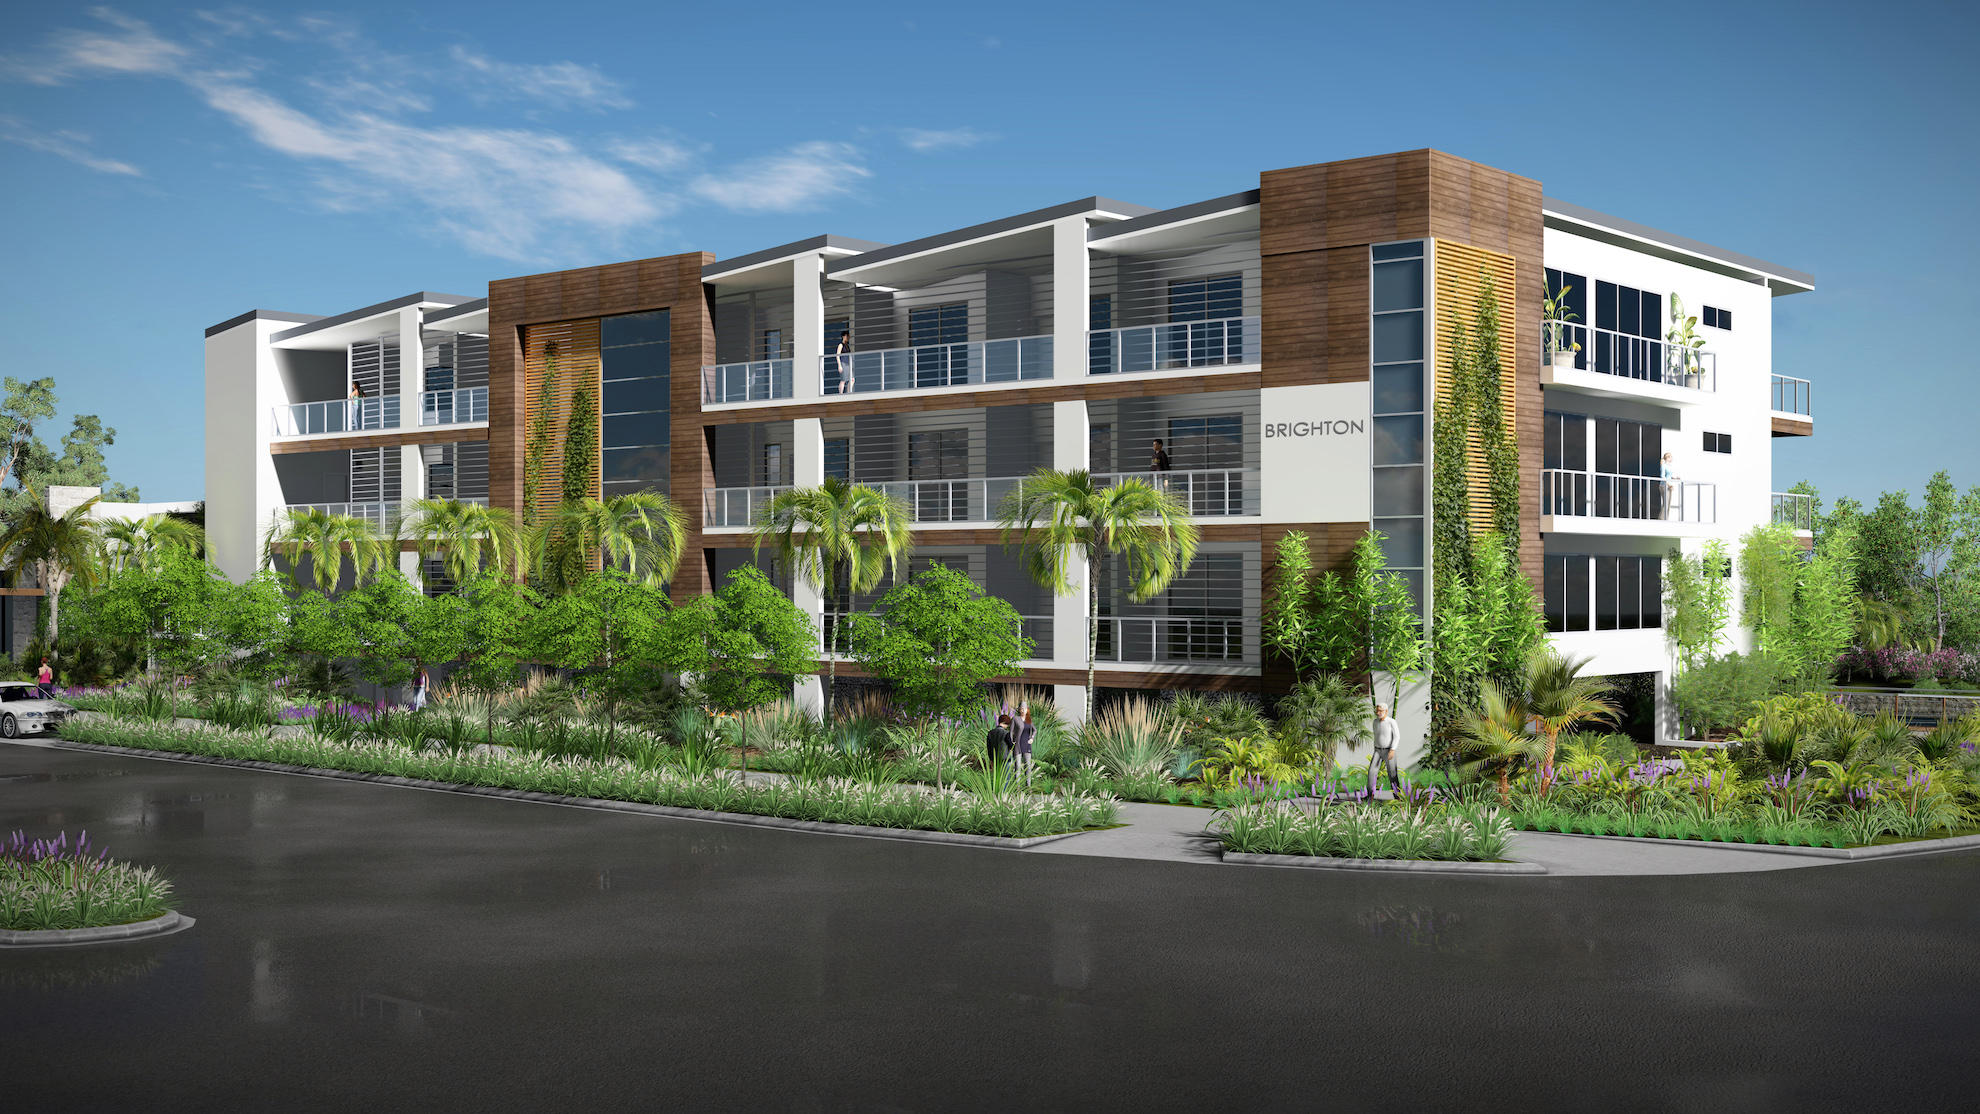 Sunshine Cove Street Corner project by mdesign, a building design practice that operates on the Sunshine Coast.